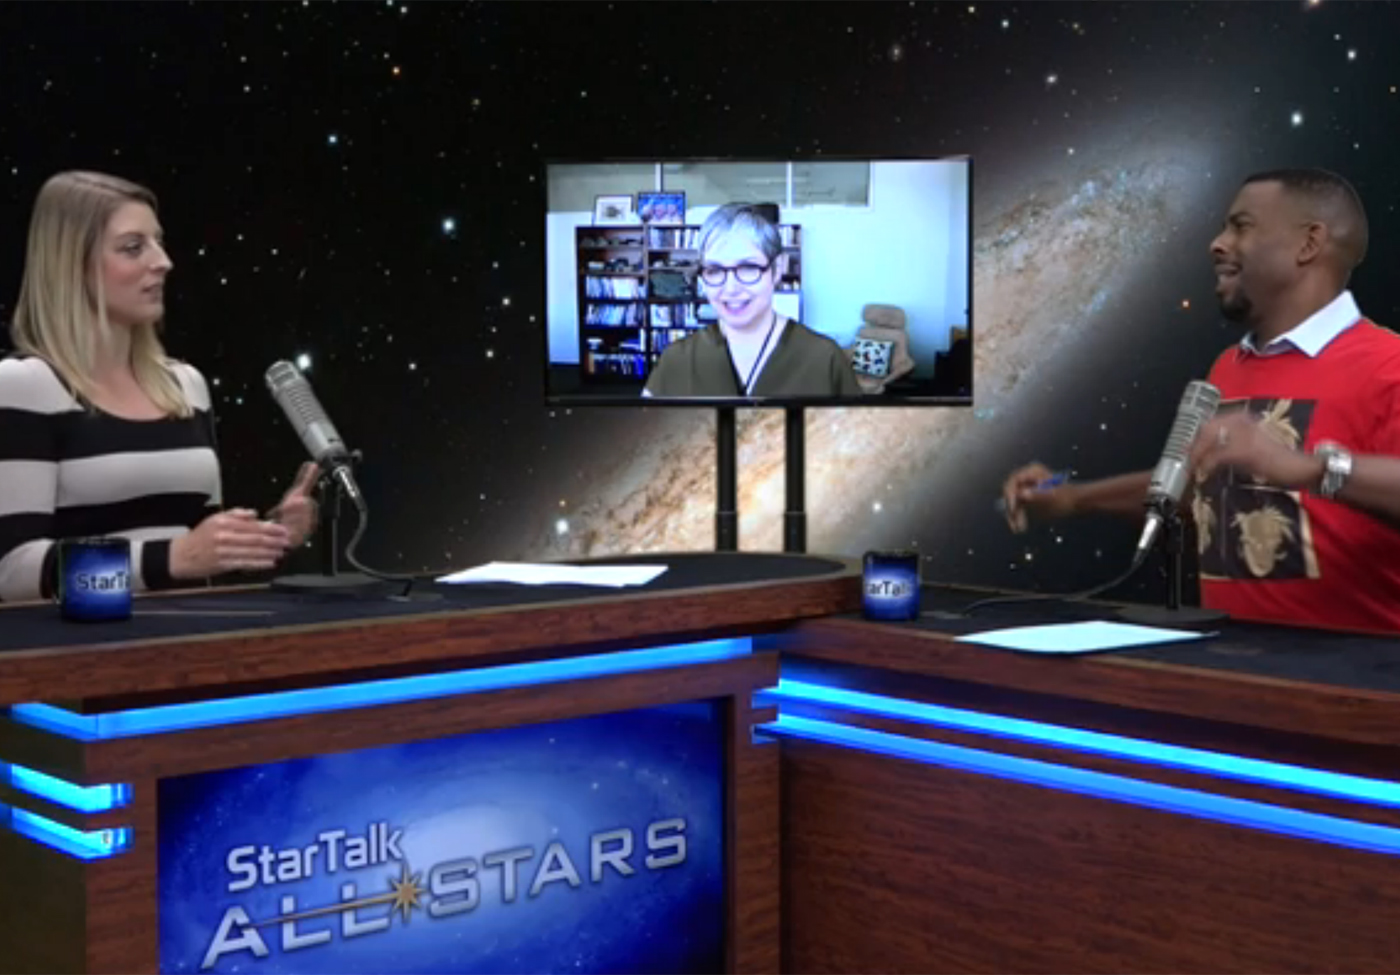 http://www.startalkradio.net/tuesday-startalk-all-stars-host-natalie-starkey-takes-us-searching-for-space-water/?post_types=post